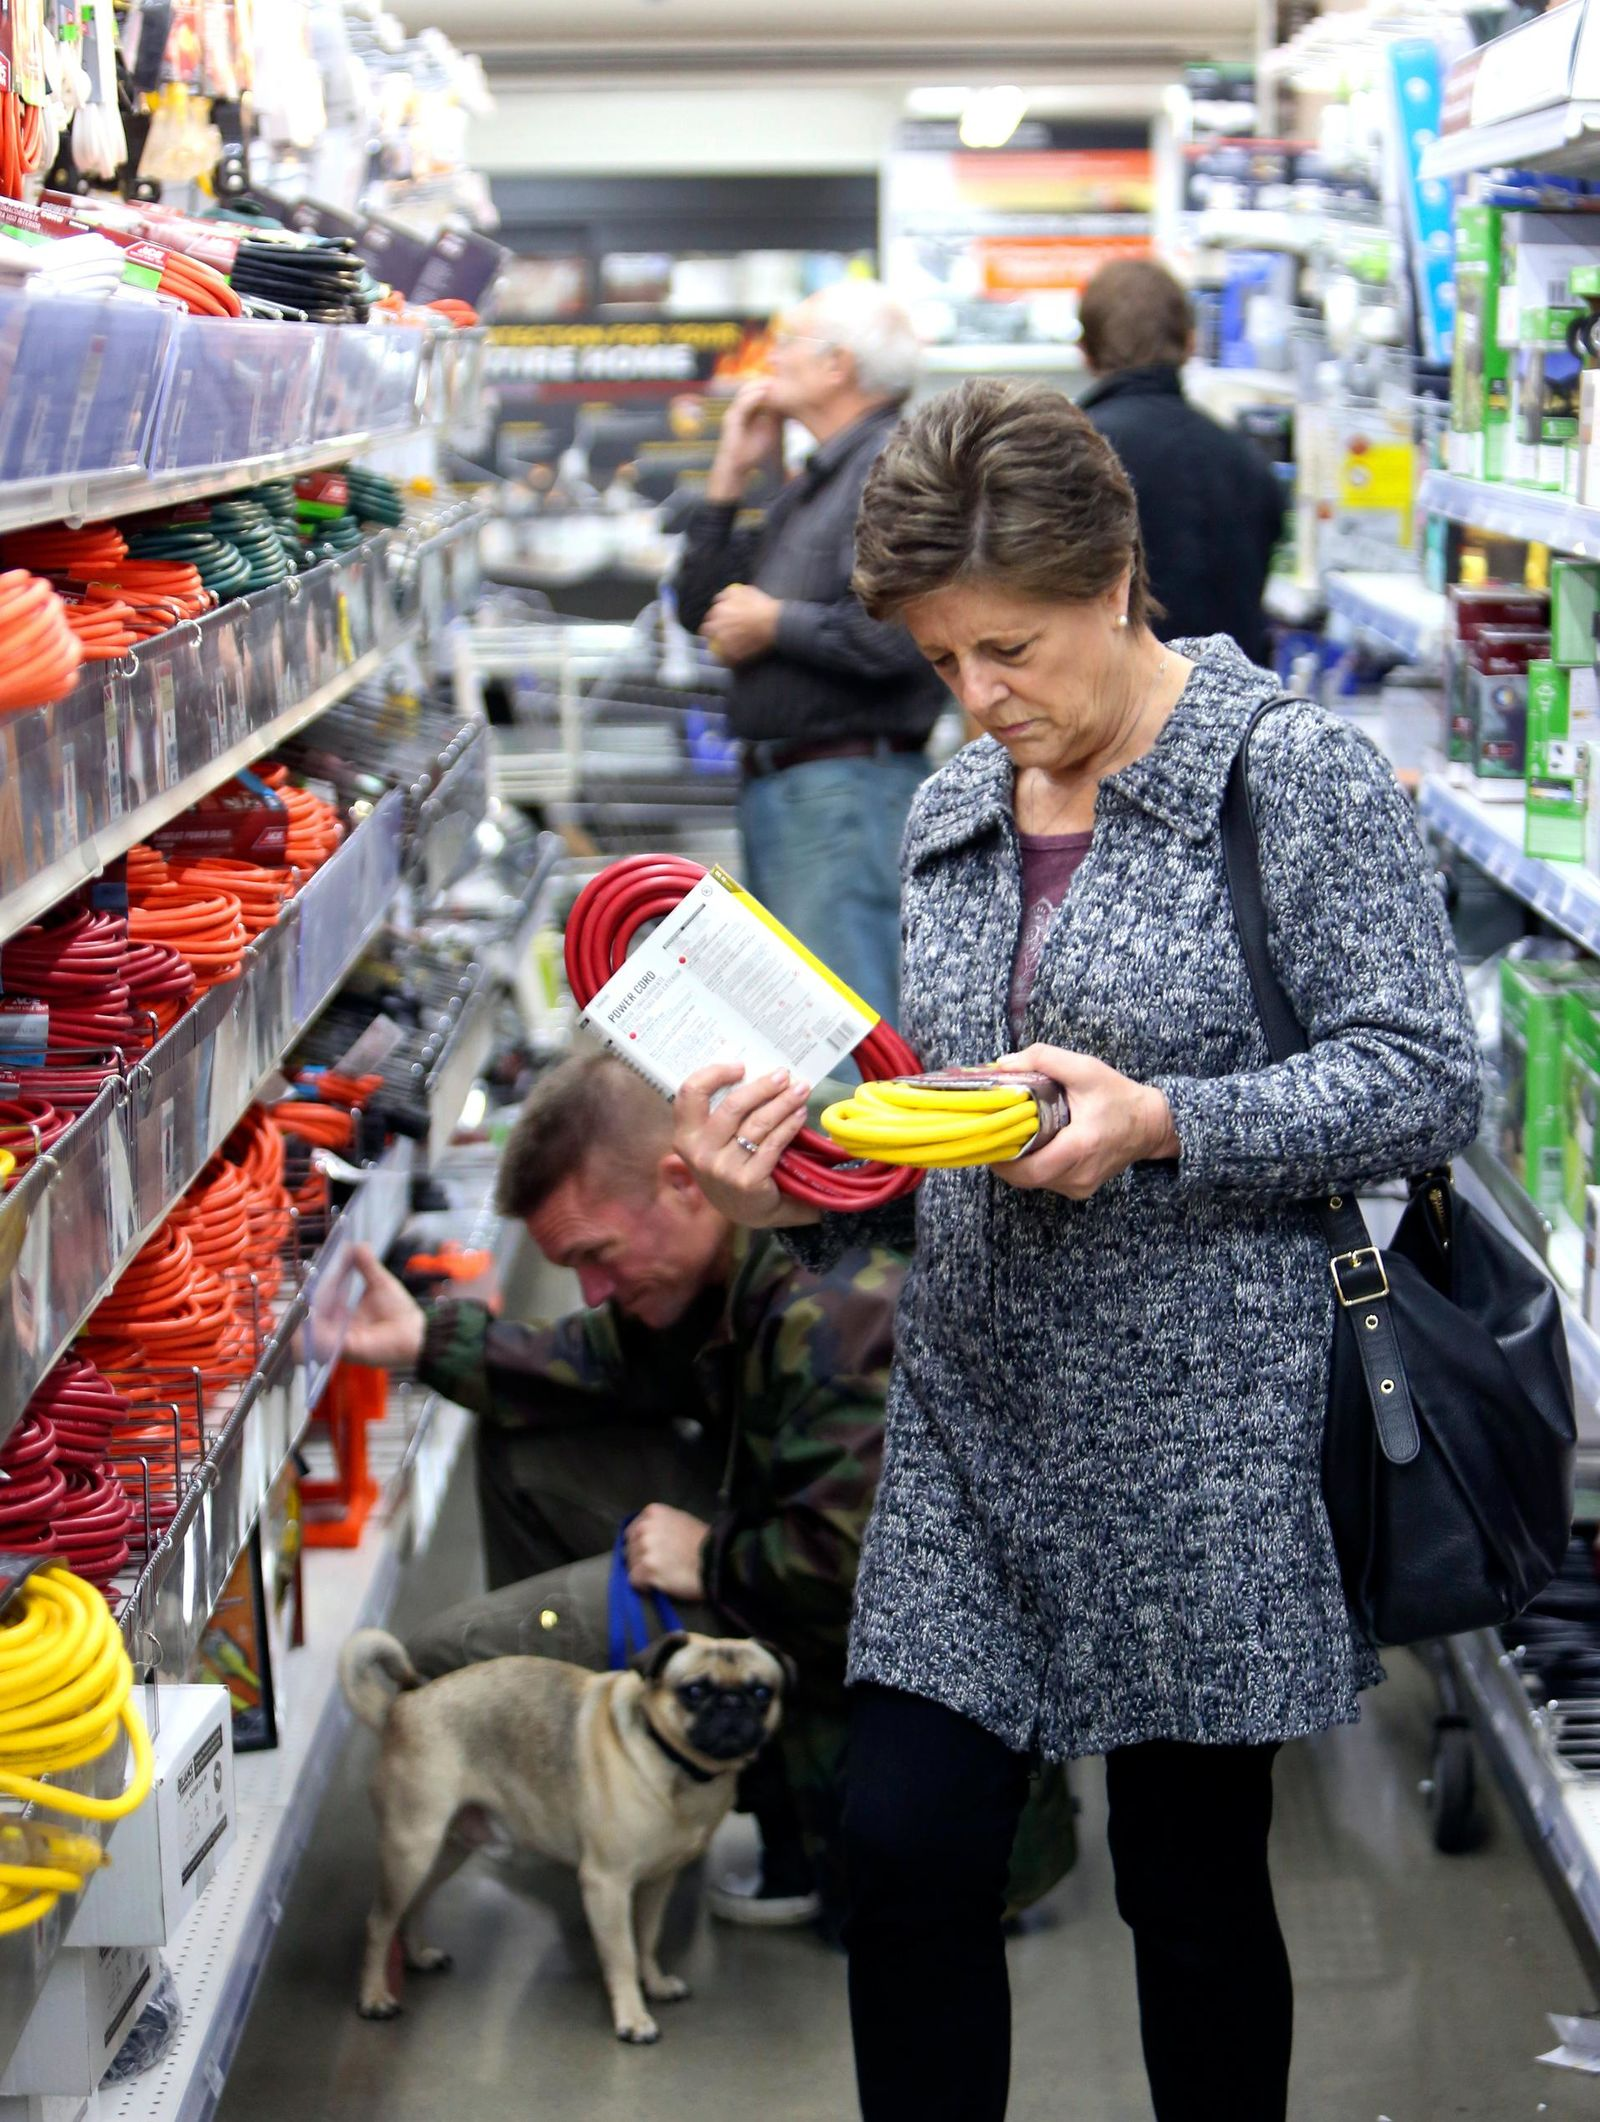 A shopper looks at extension cords at B&C Ace hardware store, Tuesday, Nov. 19, 2019, in Grass Valley, Calif., in preparation of the planned Pacific Gas & Electric power shutdown scheduled for Wednesday and Thursday. (Elias Funez/The Union via AP)